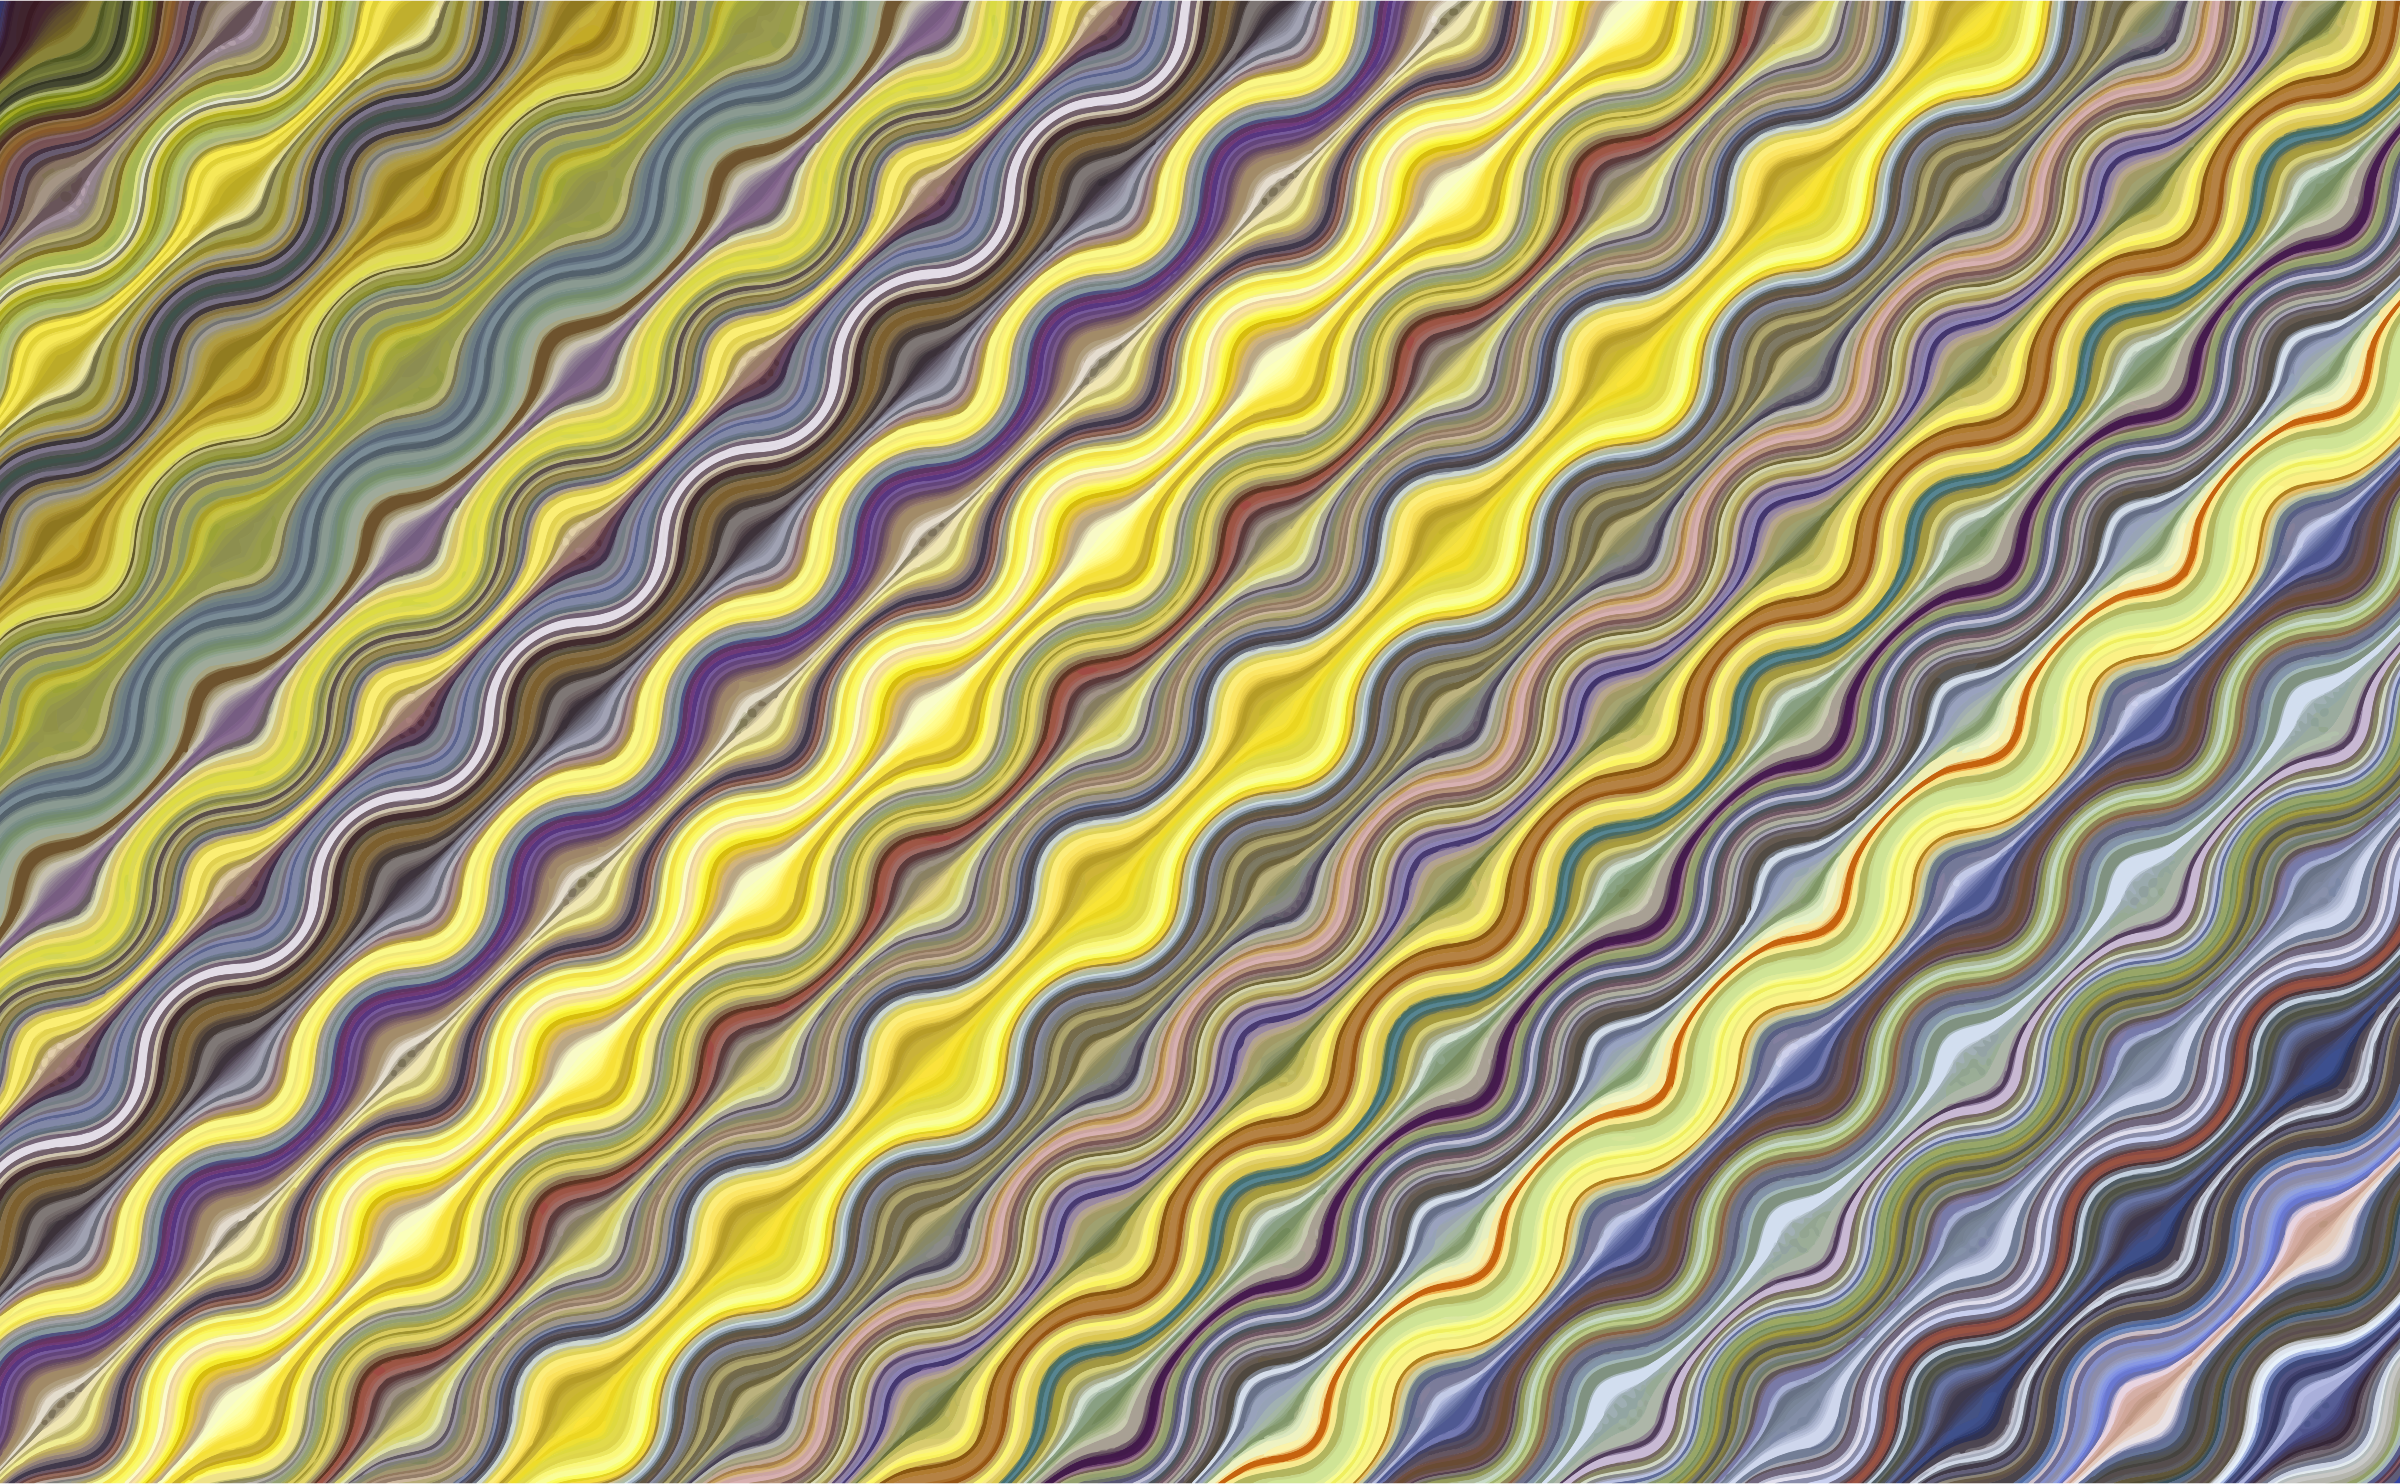 Background pattern 216 (colour 4) by Firkin